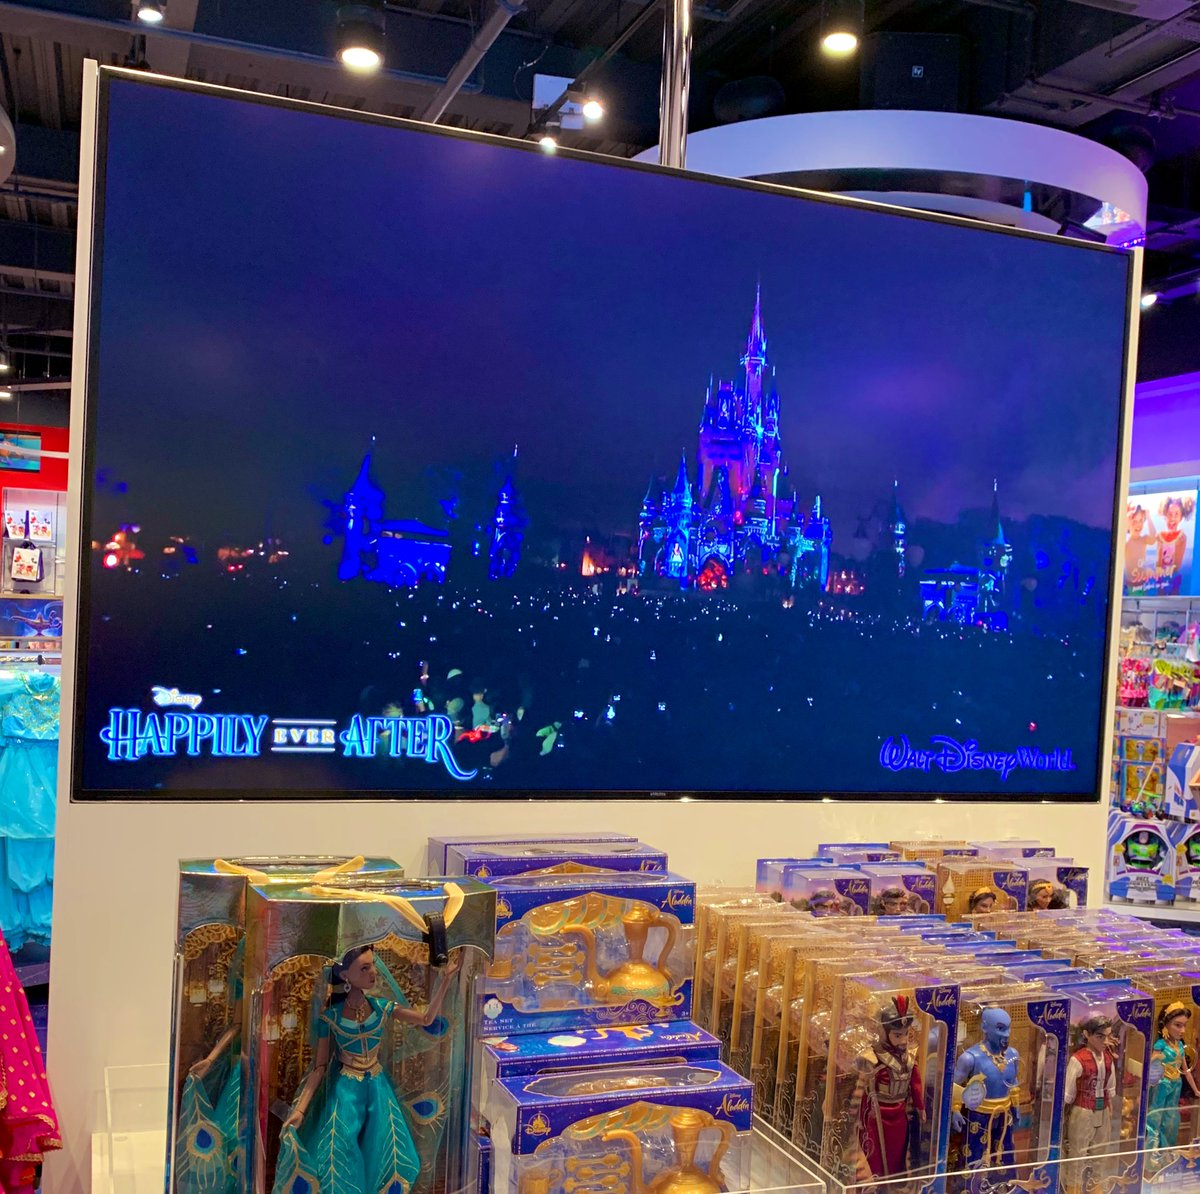 Happily ever after playing in the Disney store at Bluewater today, I'm getting some serious WDW withdrawal symptoms now! #Disney #happilyeverafter <br>http://pic.twitter.com/7ZlVyqV0Yu